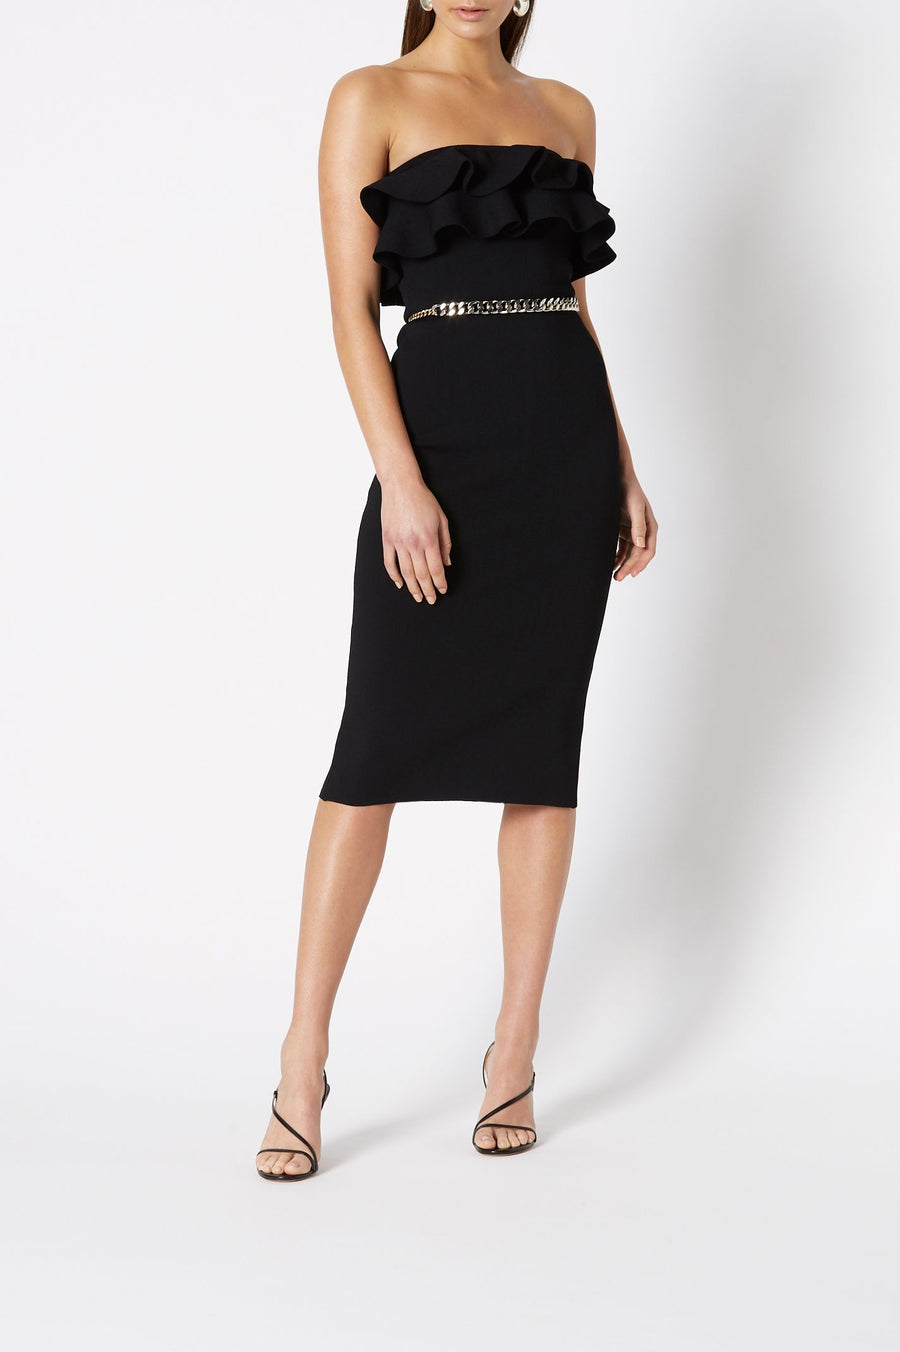 Crepe Knit Strapless Ruffle Dress, Midi Length, Color Black, Strapless